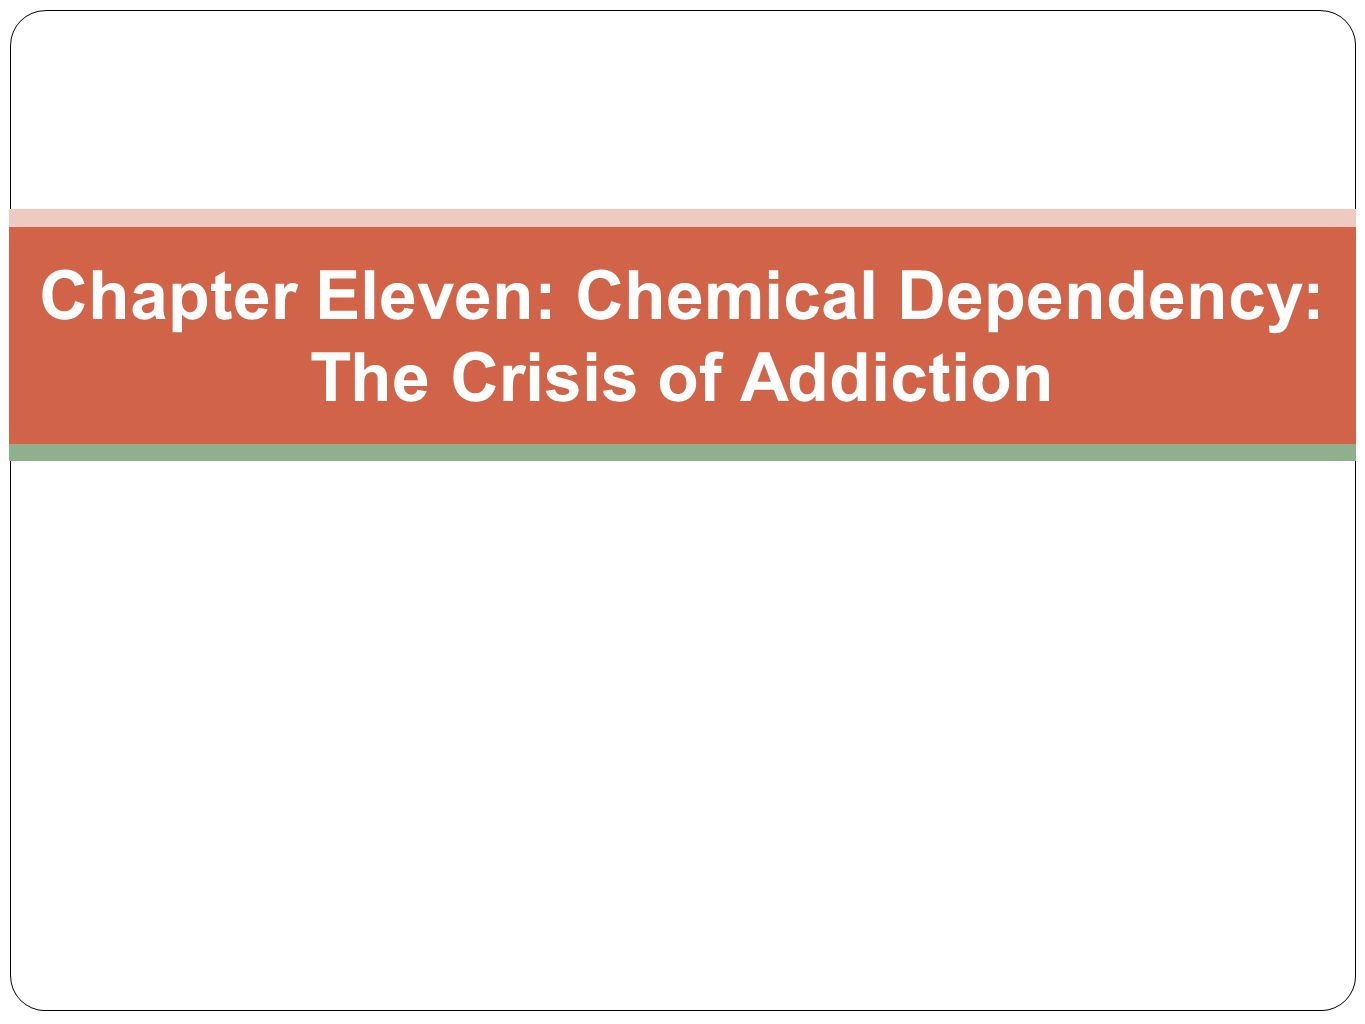 Chapter Eleven: Chemical Dependency: The Crisis of Addiction